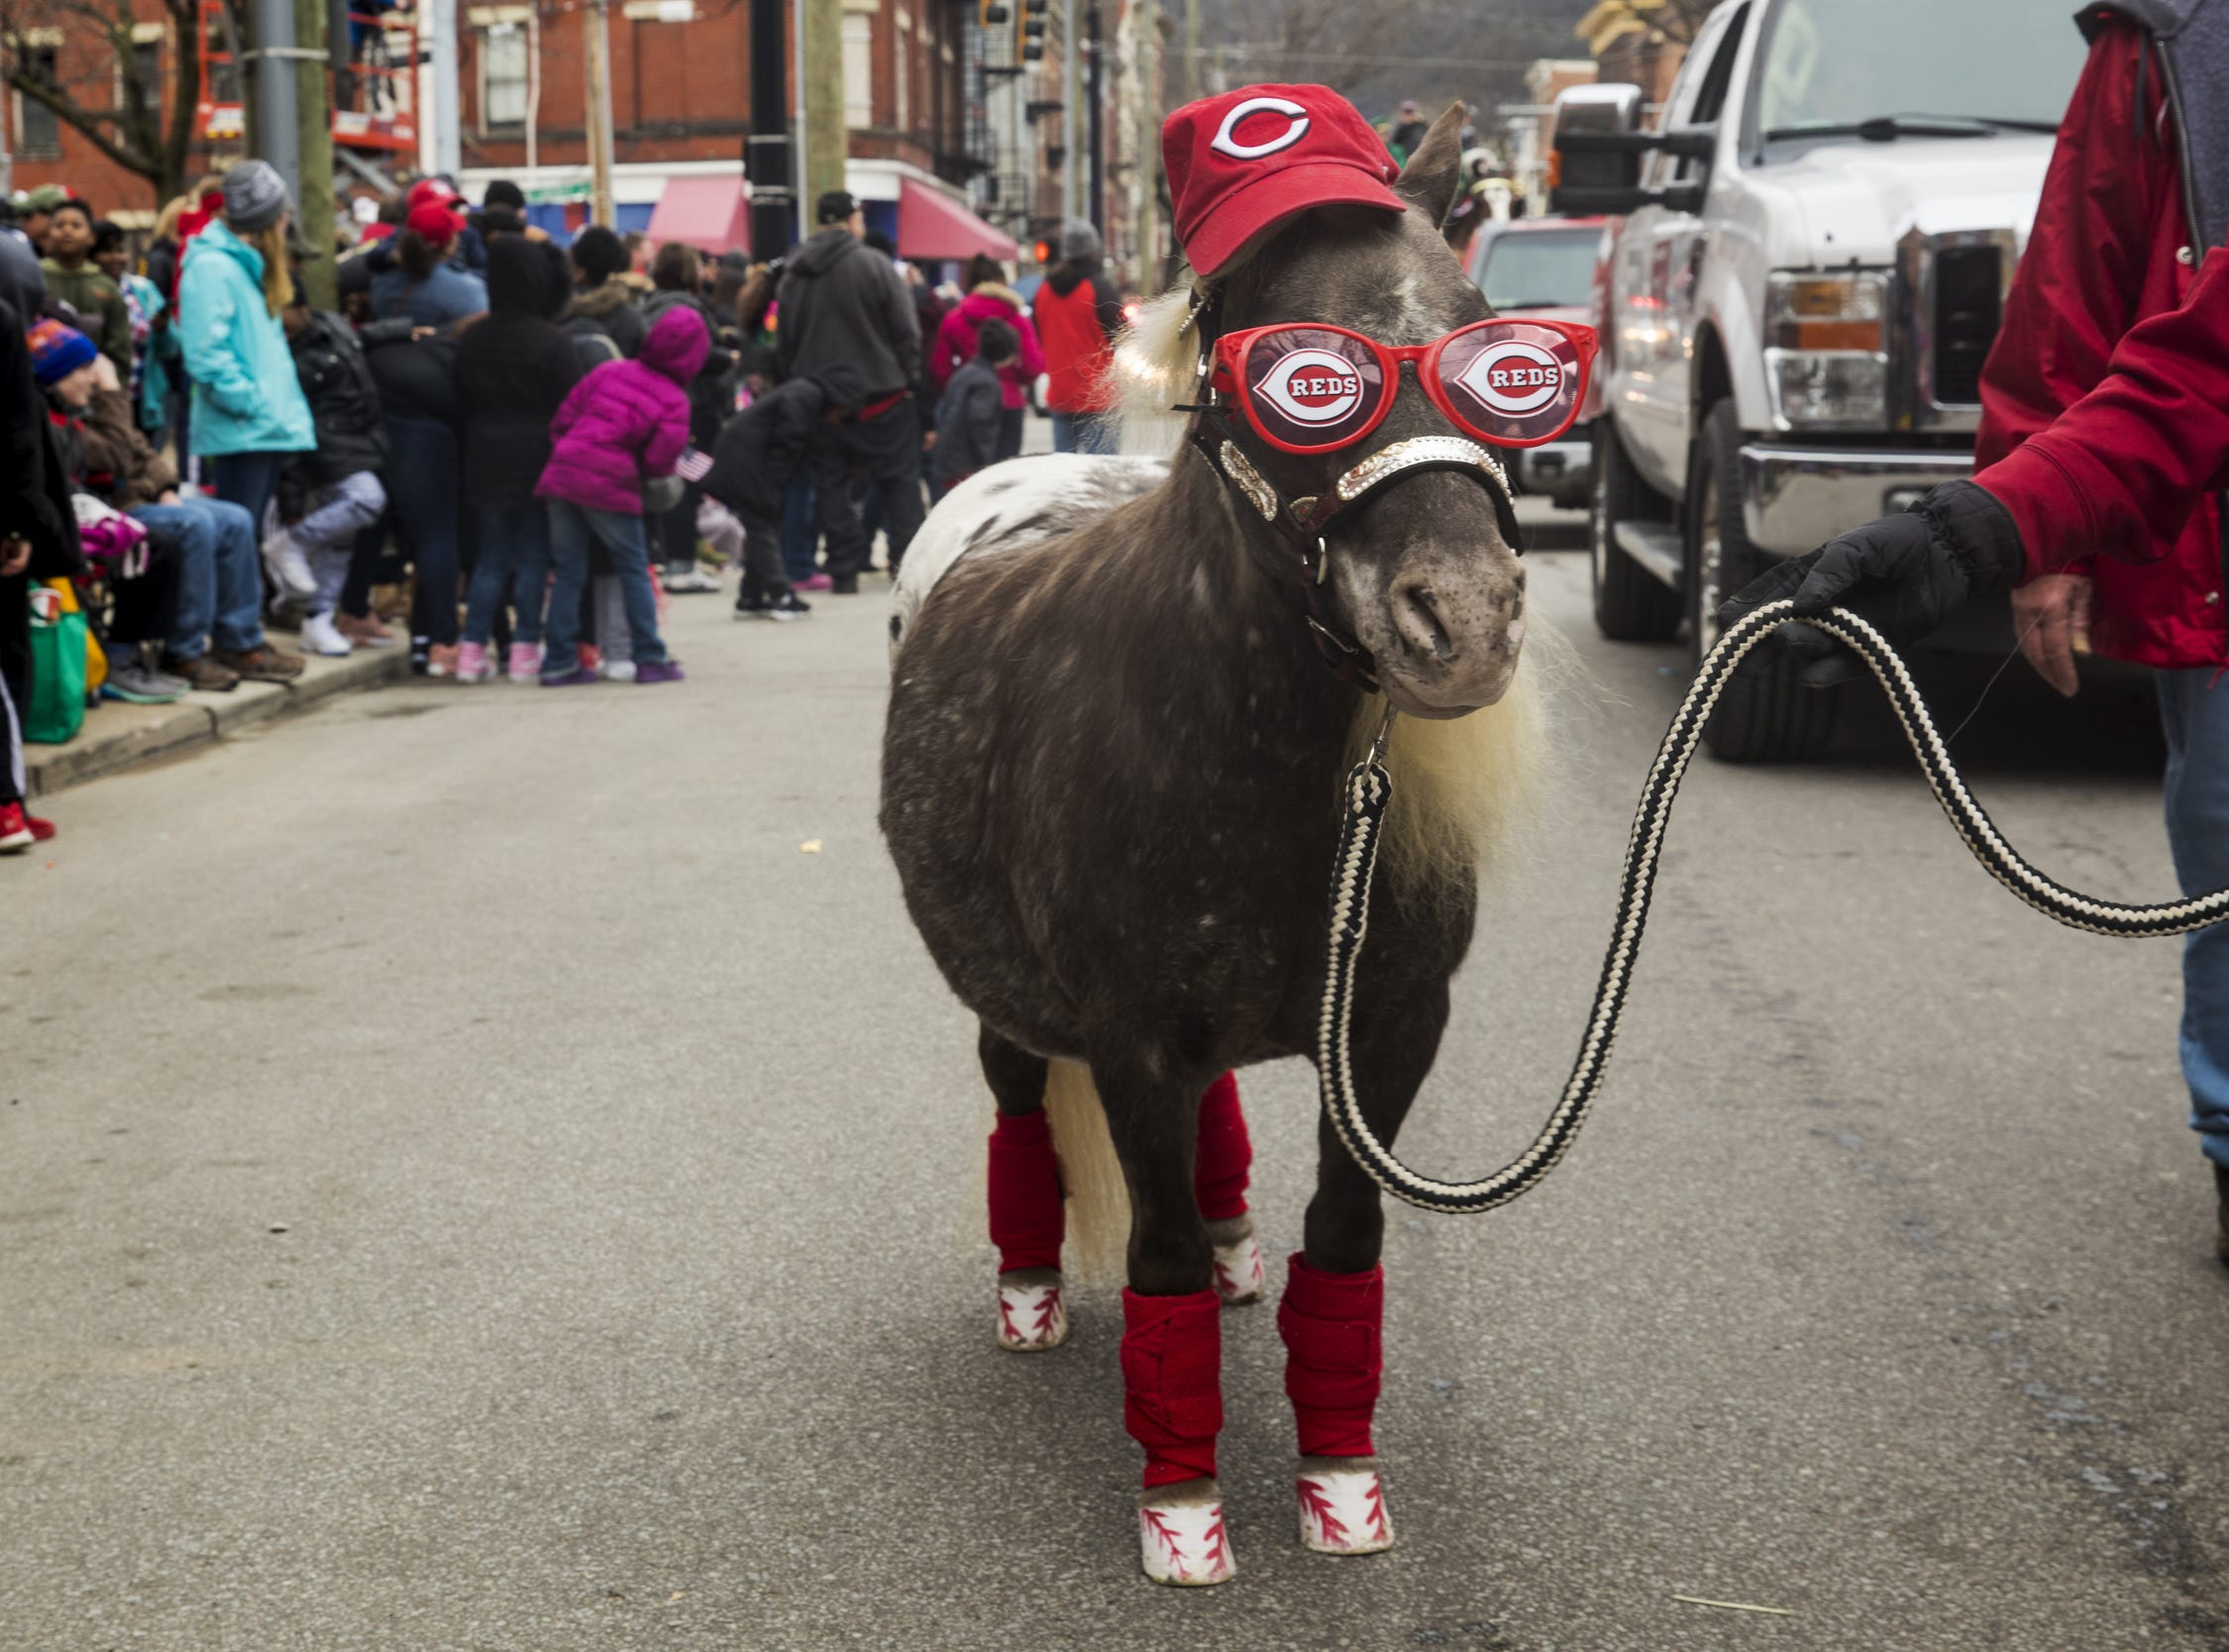 April 1, 2018: Ohio Horseman's Council Hamilton County Chapter brought their dressed-up miniature horses to the Findlay Market Opening Day Parade in downtown Cincinnati.